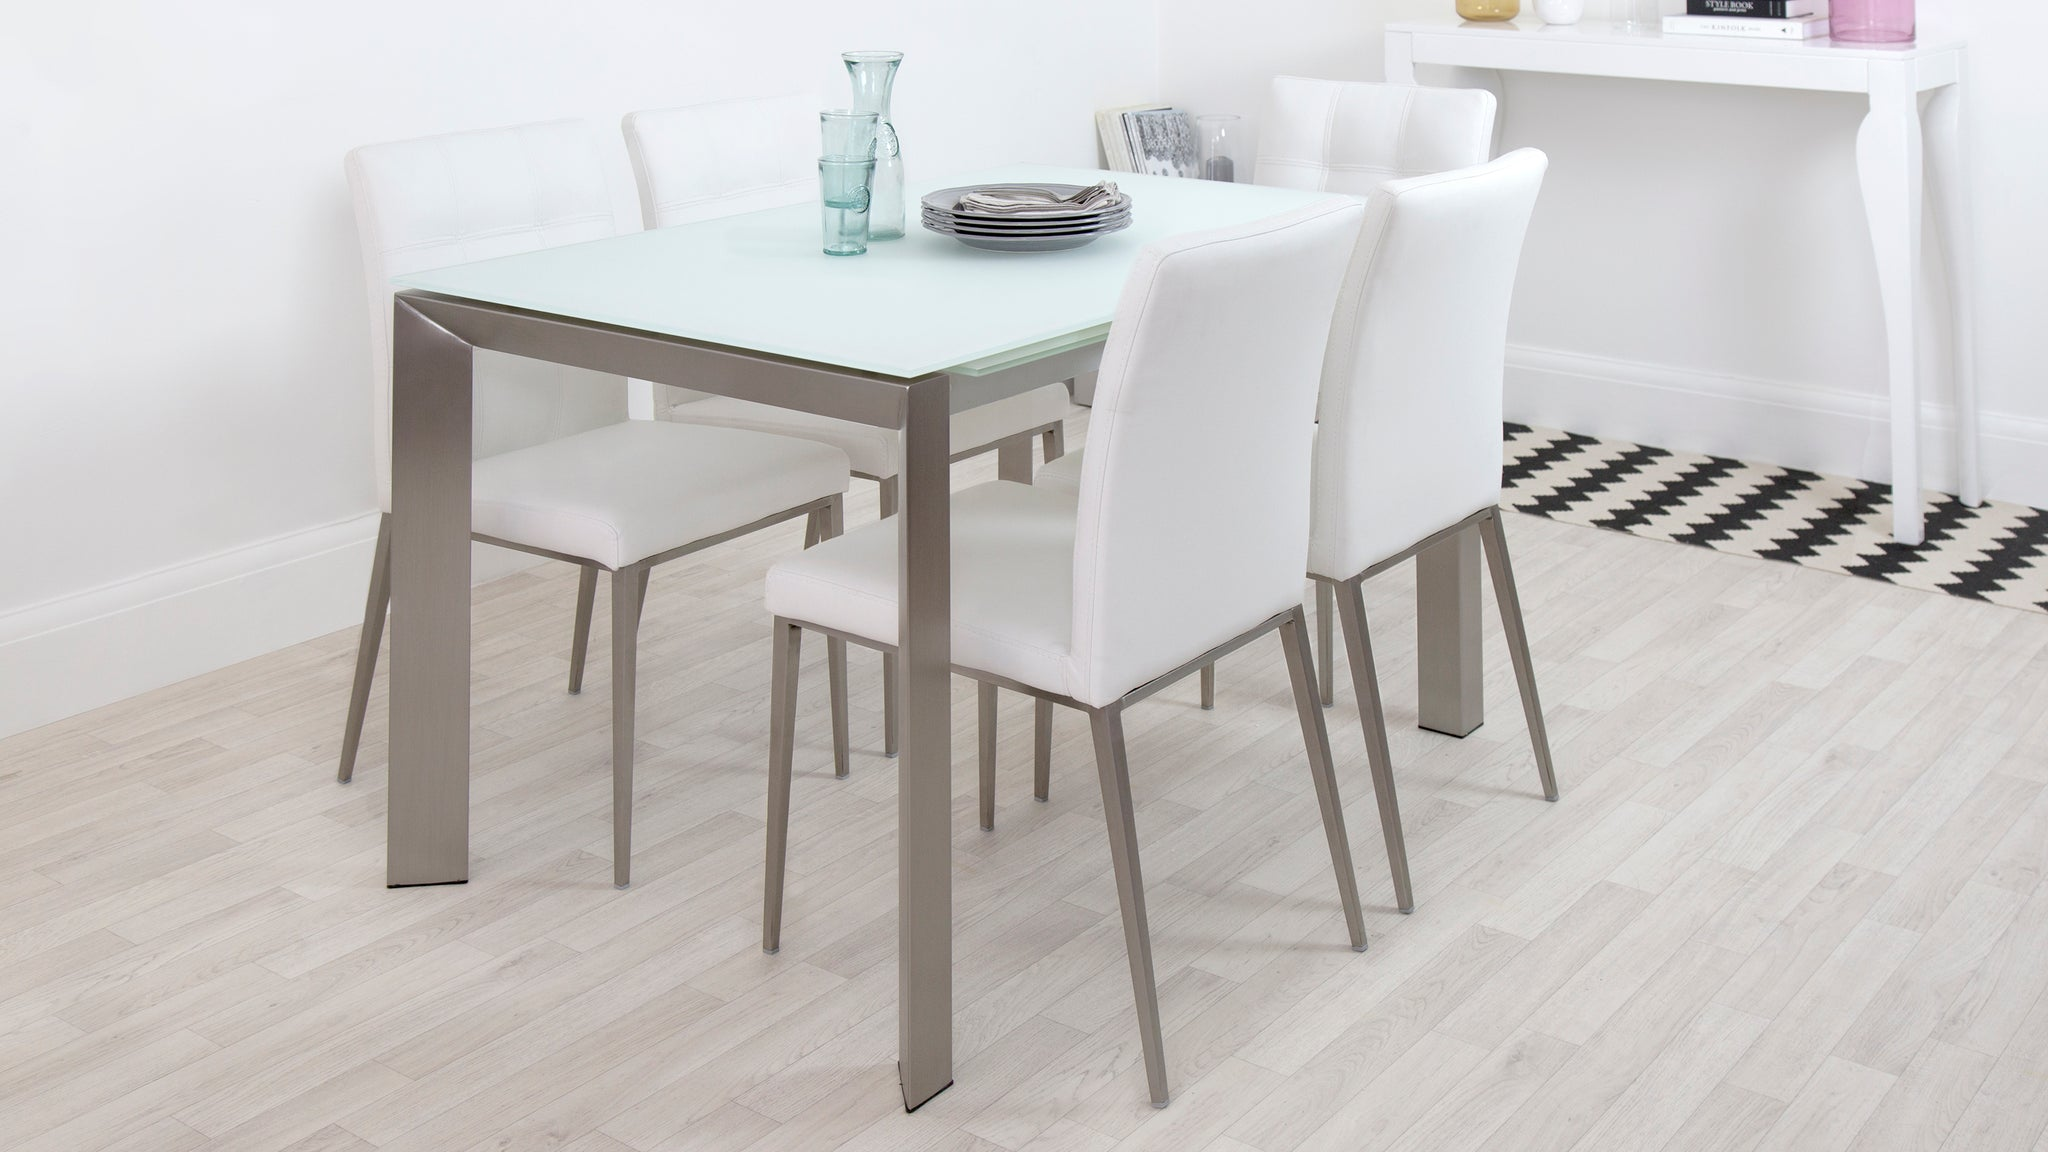 Eve White Frosted Glass With Brushed Stainless Steel And Moda Extending Dining Set